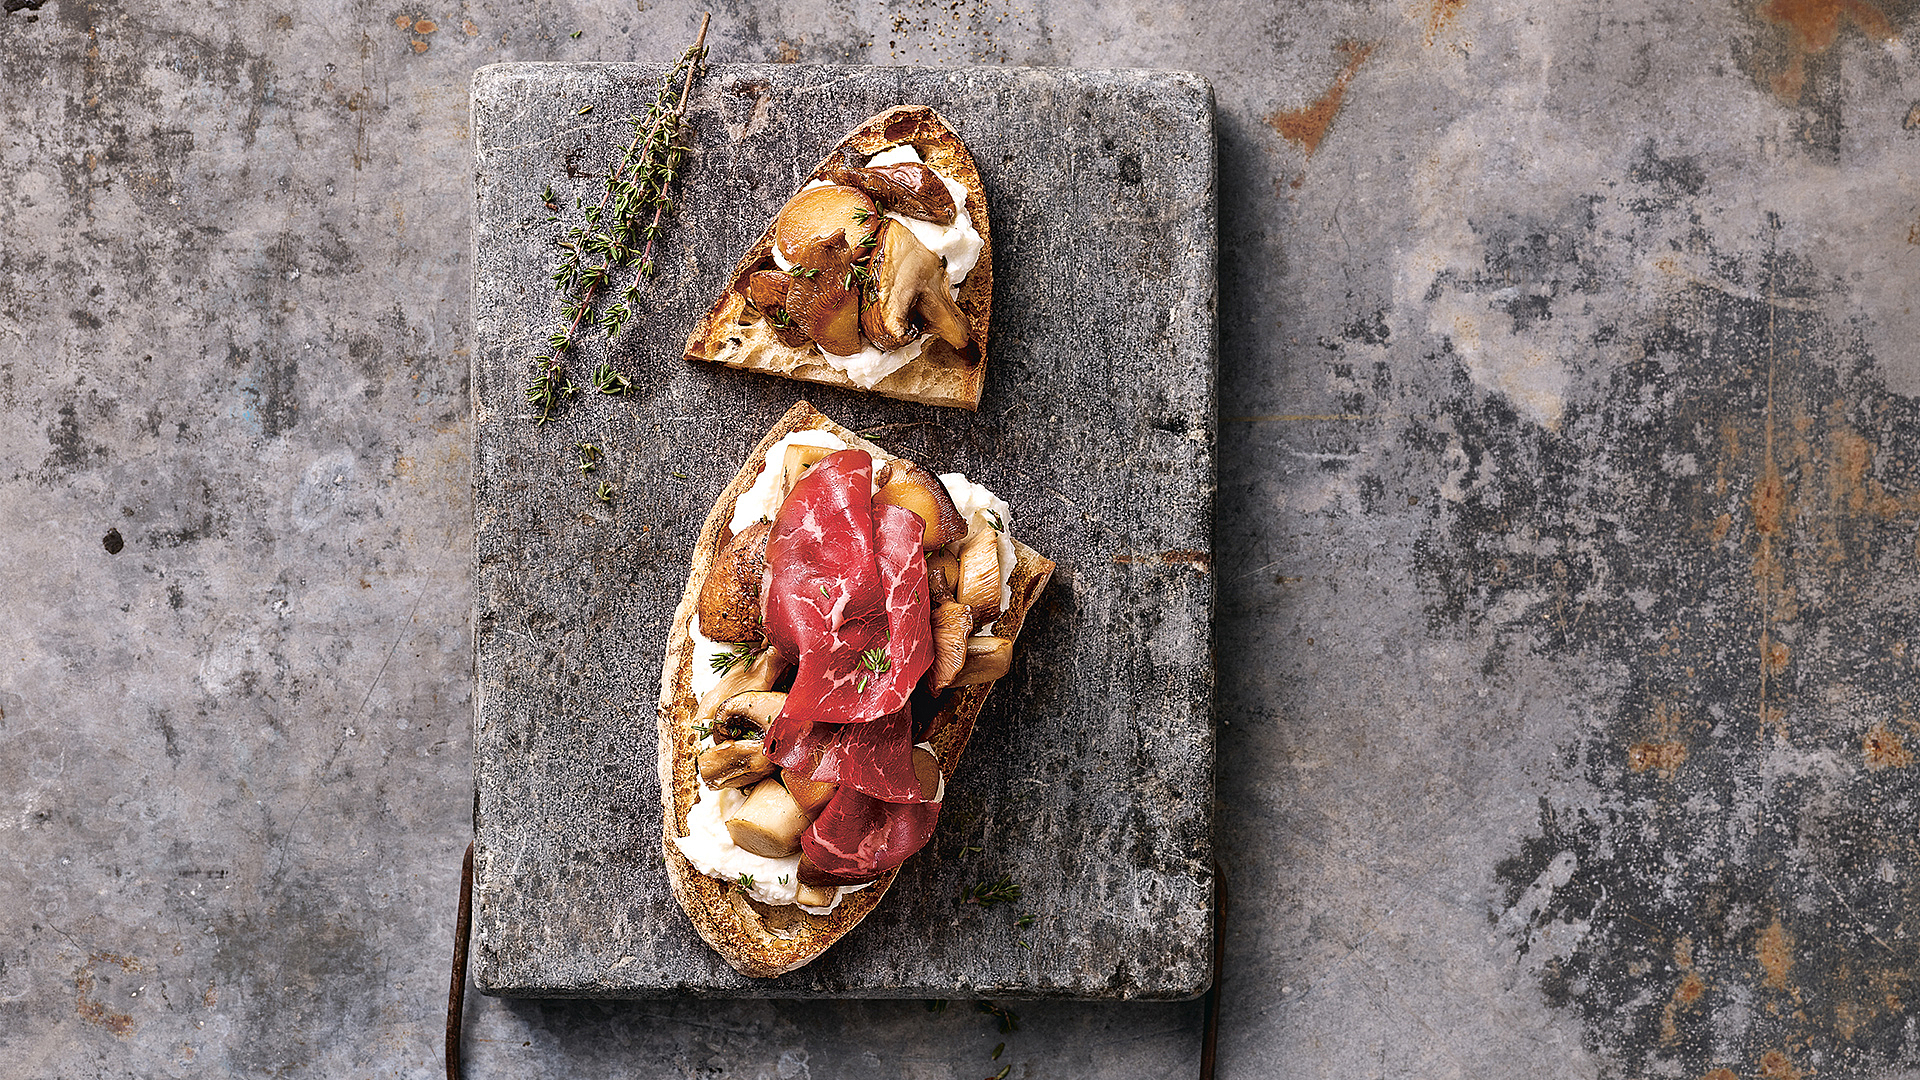 55_Pure_Cooking_Dinkel_Bruschetta_Pilze.jpg